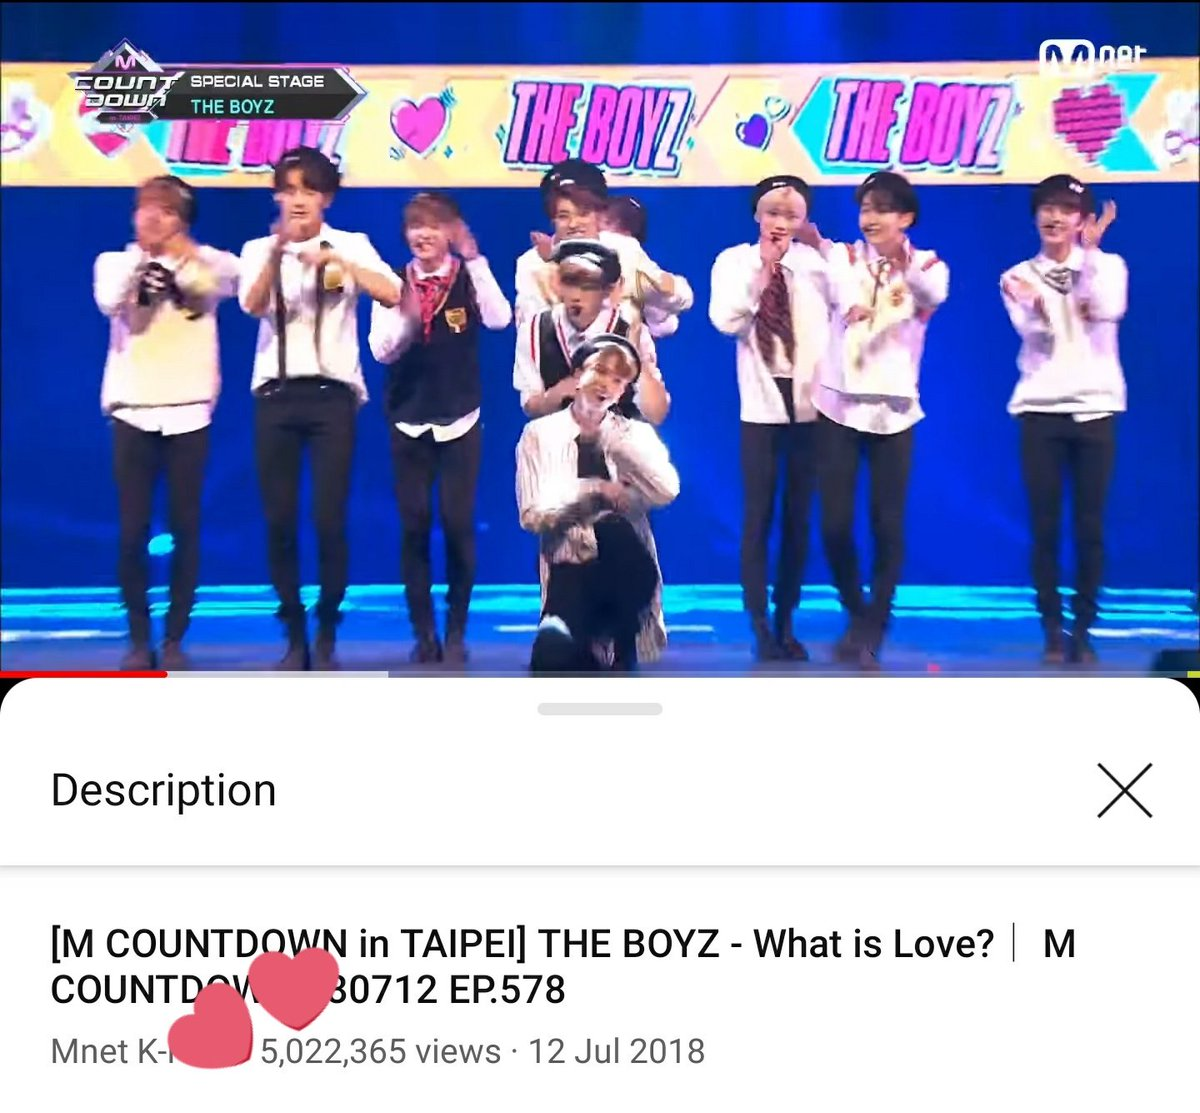 "#THEBOYZ | 090321 ー YOUTUBE  La performance spéciale de THE BOYZ au M COUNTDOWN à TAIPEI sur ""What Is Love?"" de Twice a atteint 5 millions de vues !  ❣  Cam 